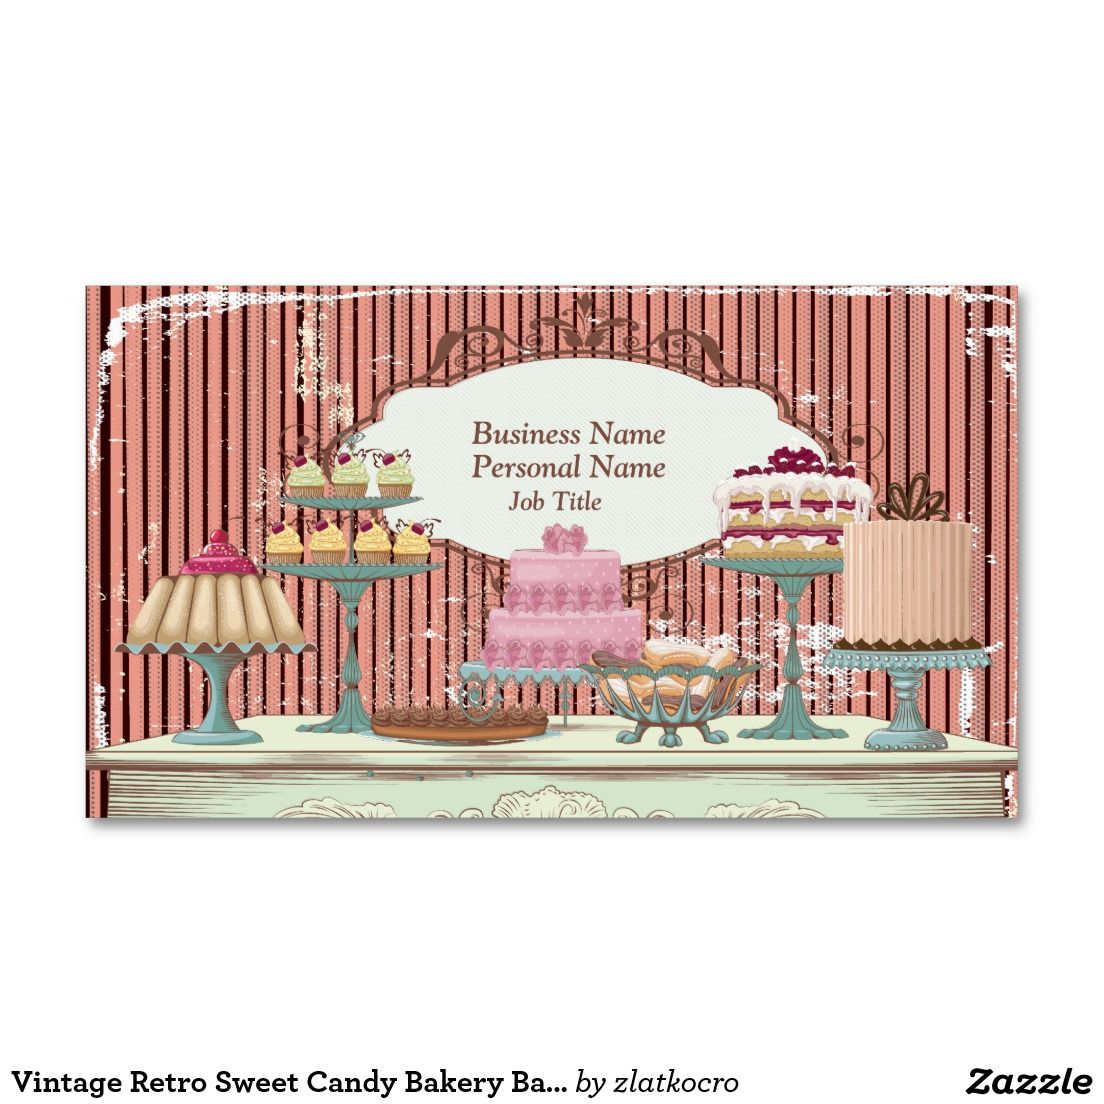 Vintage Retro Sweet Candy Bakery Bar Profile Card Double Sided Standard Business Cards Pack